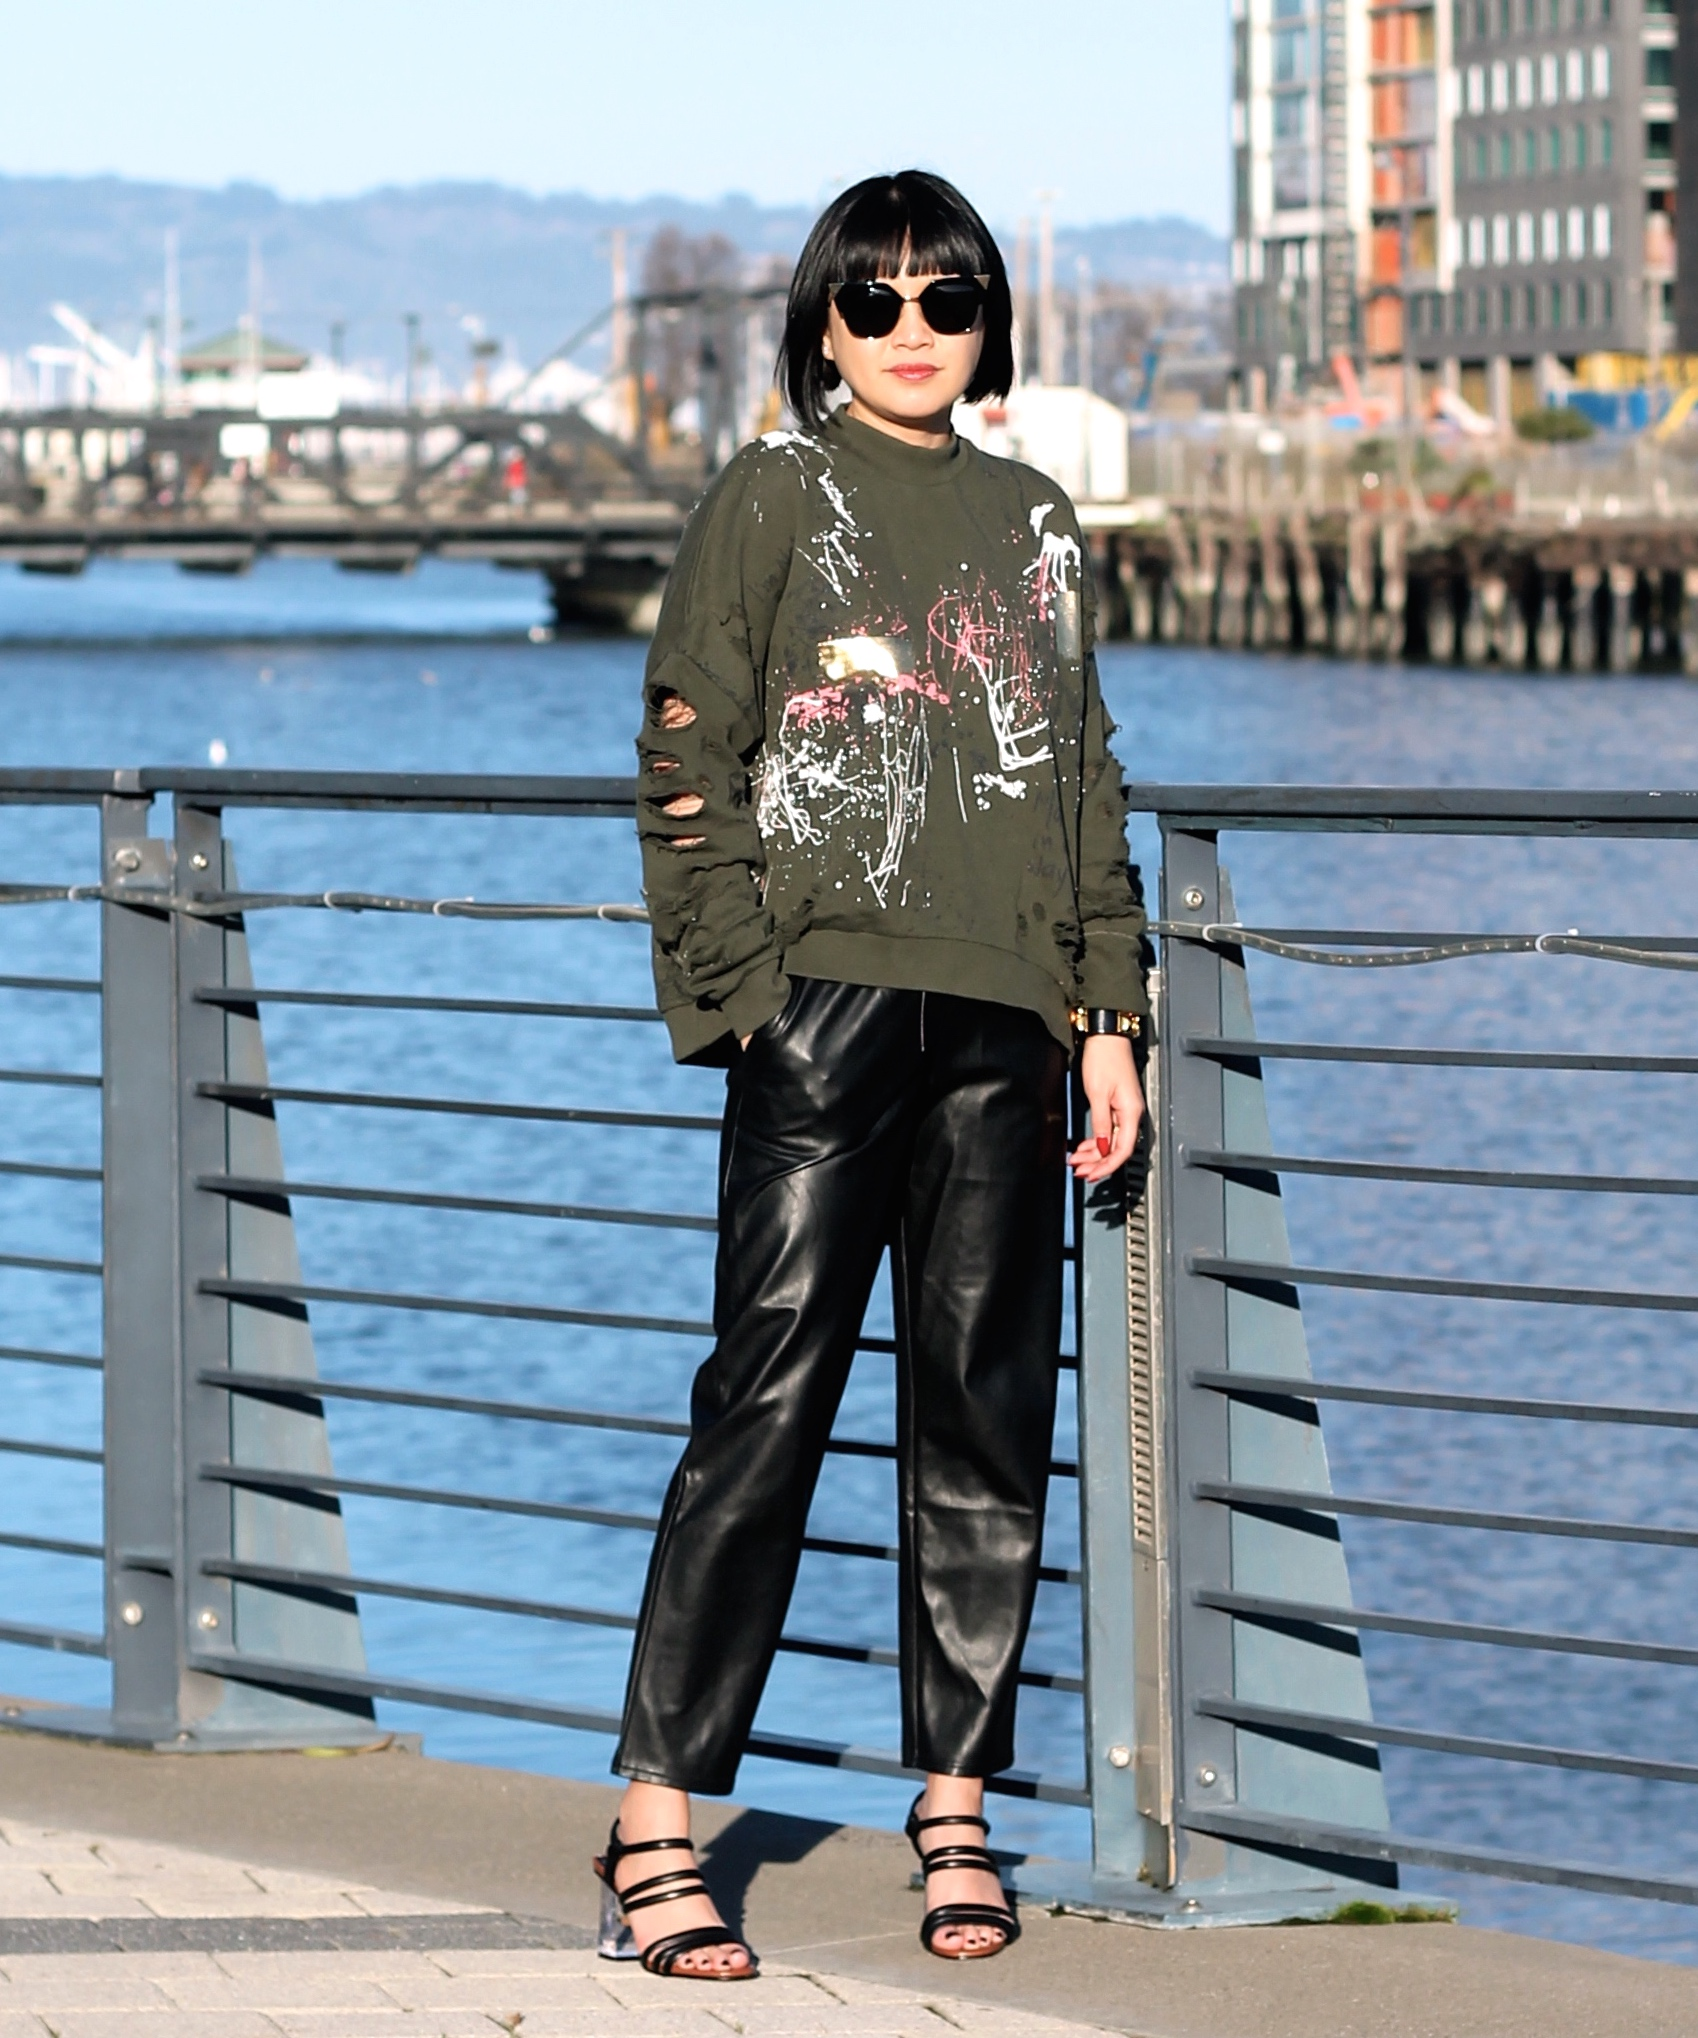 Zara sweater, Aritizia pants, Zara shoes, Fendi sunglasses